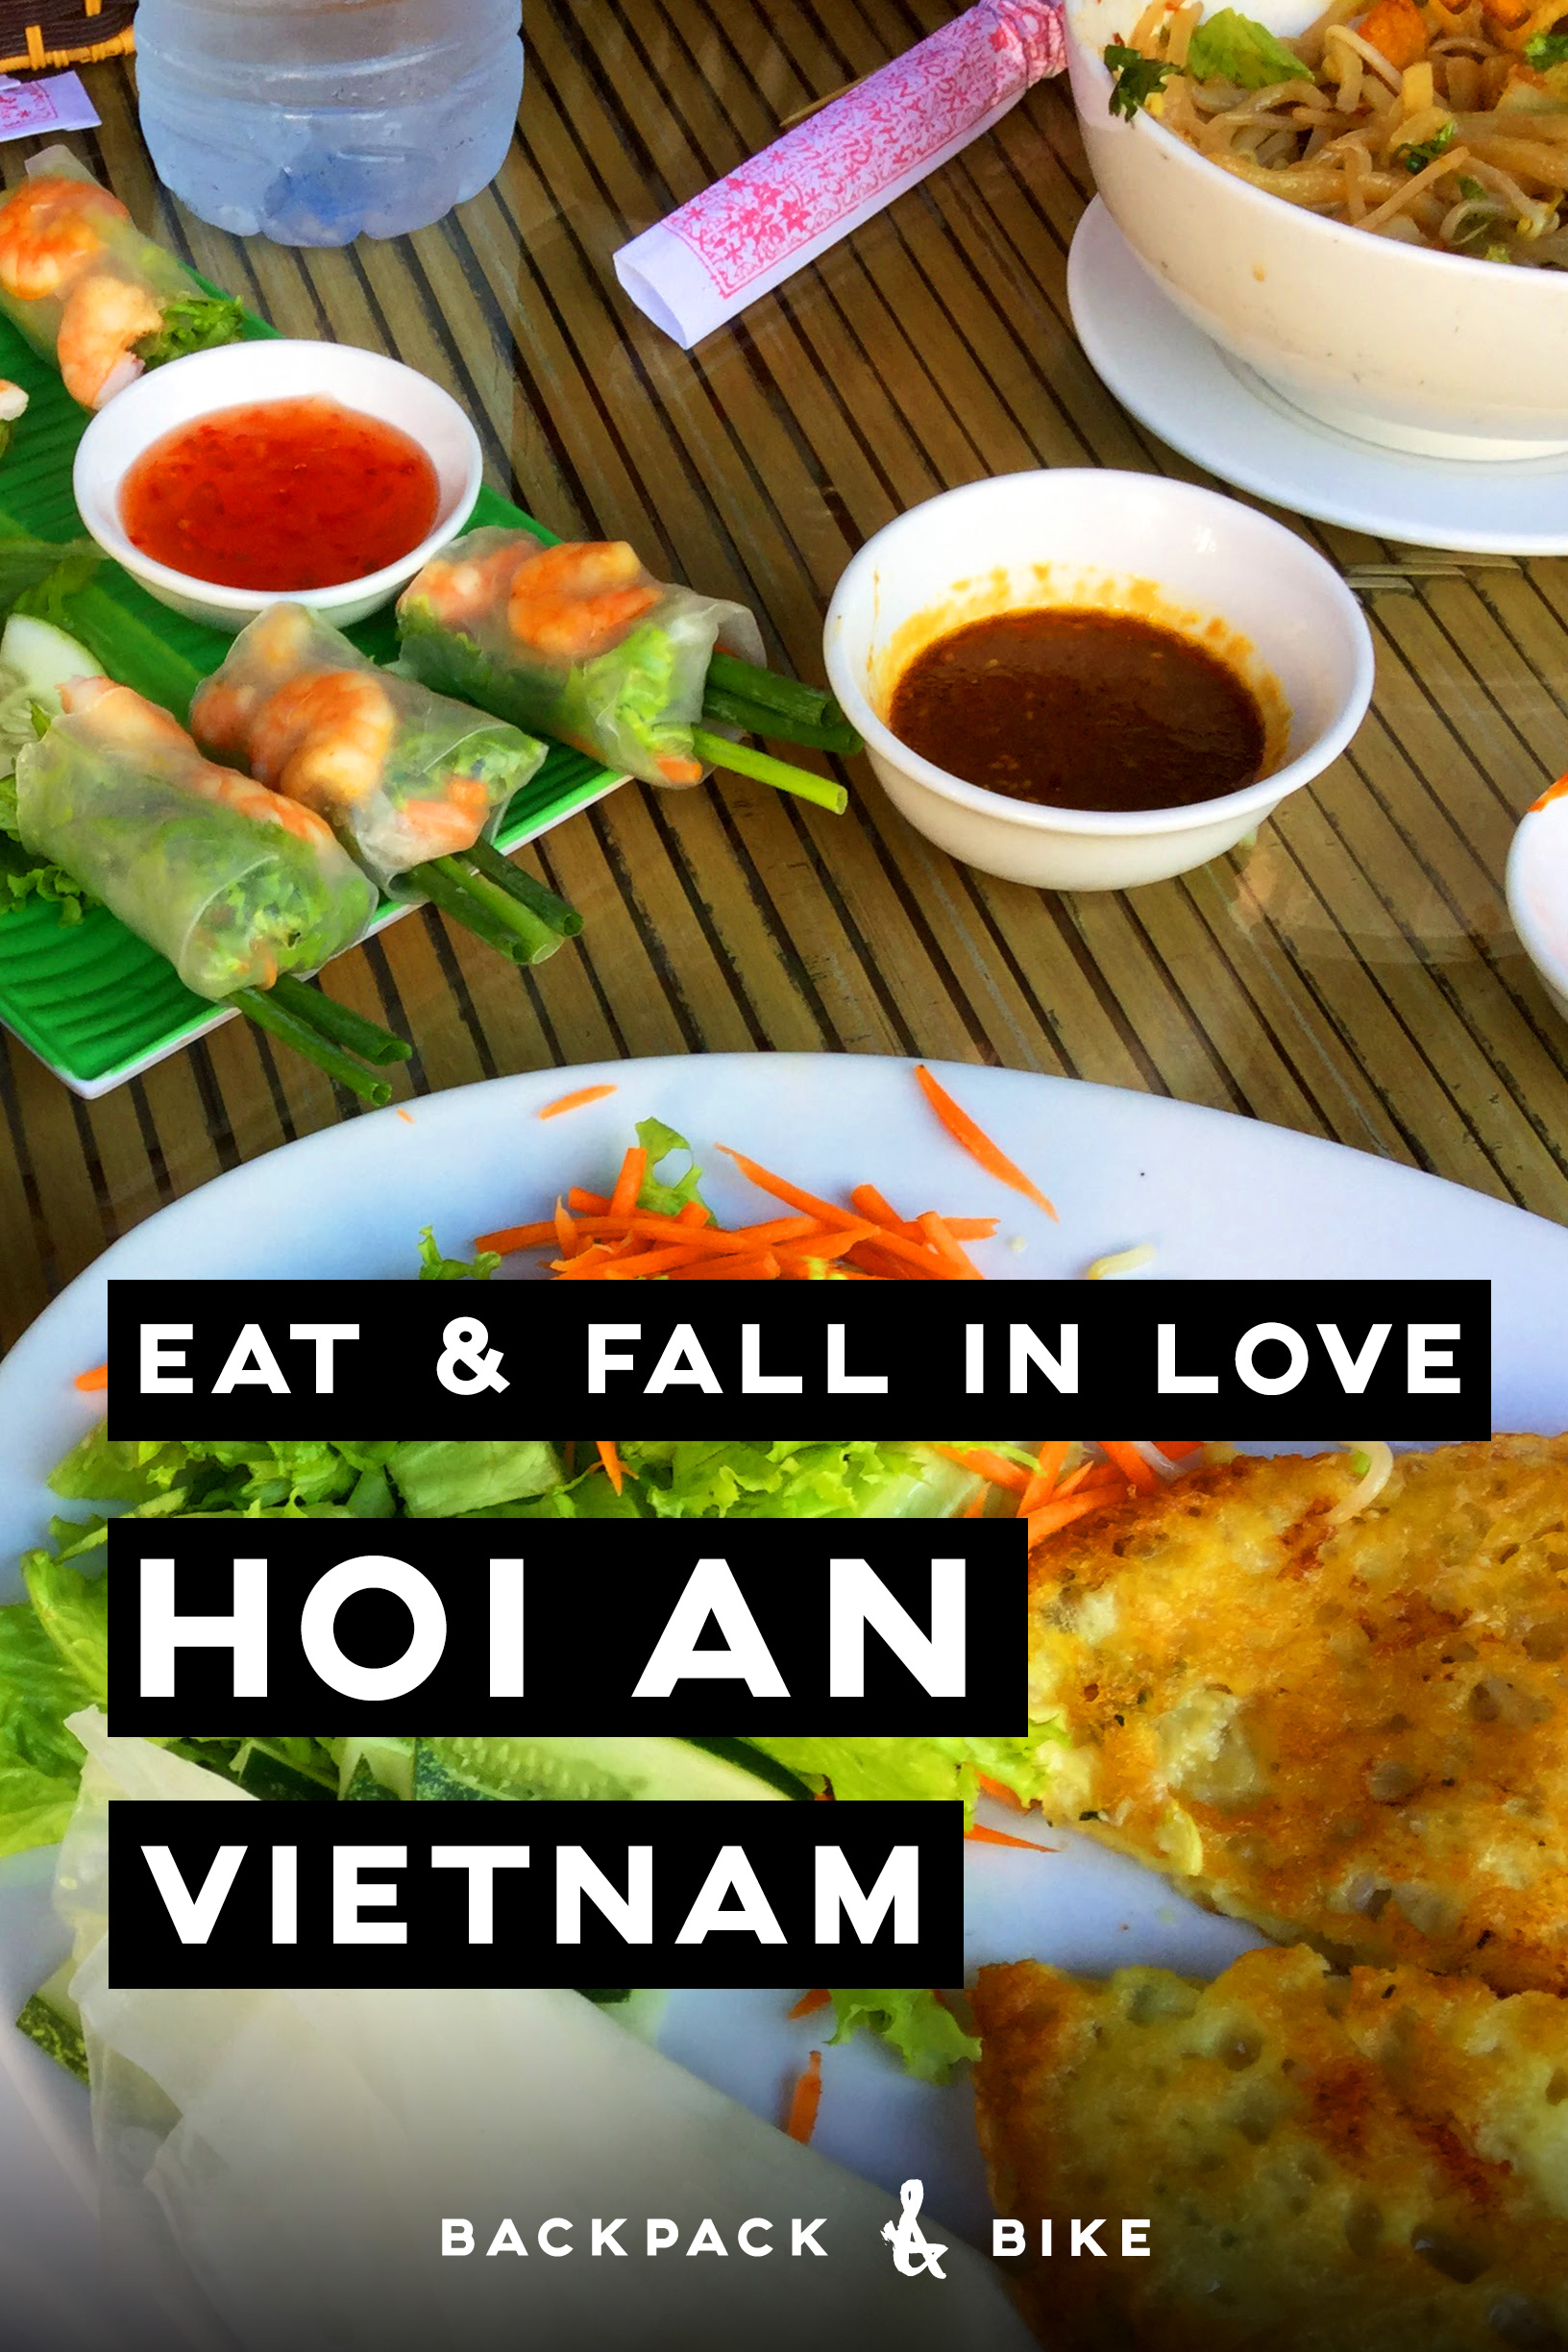 Eat and Fall in Love in Hoi An, Vietnam - Backpack & Bike